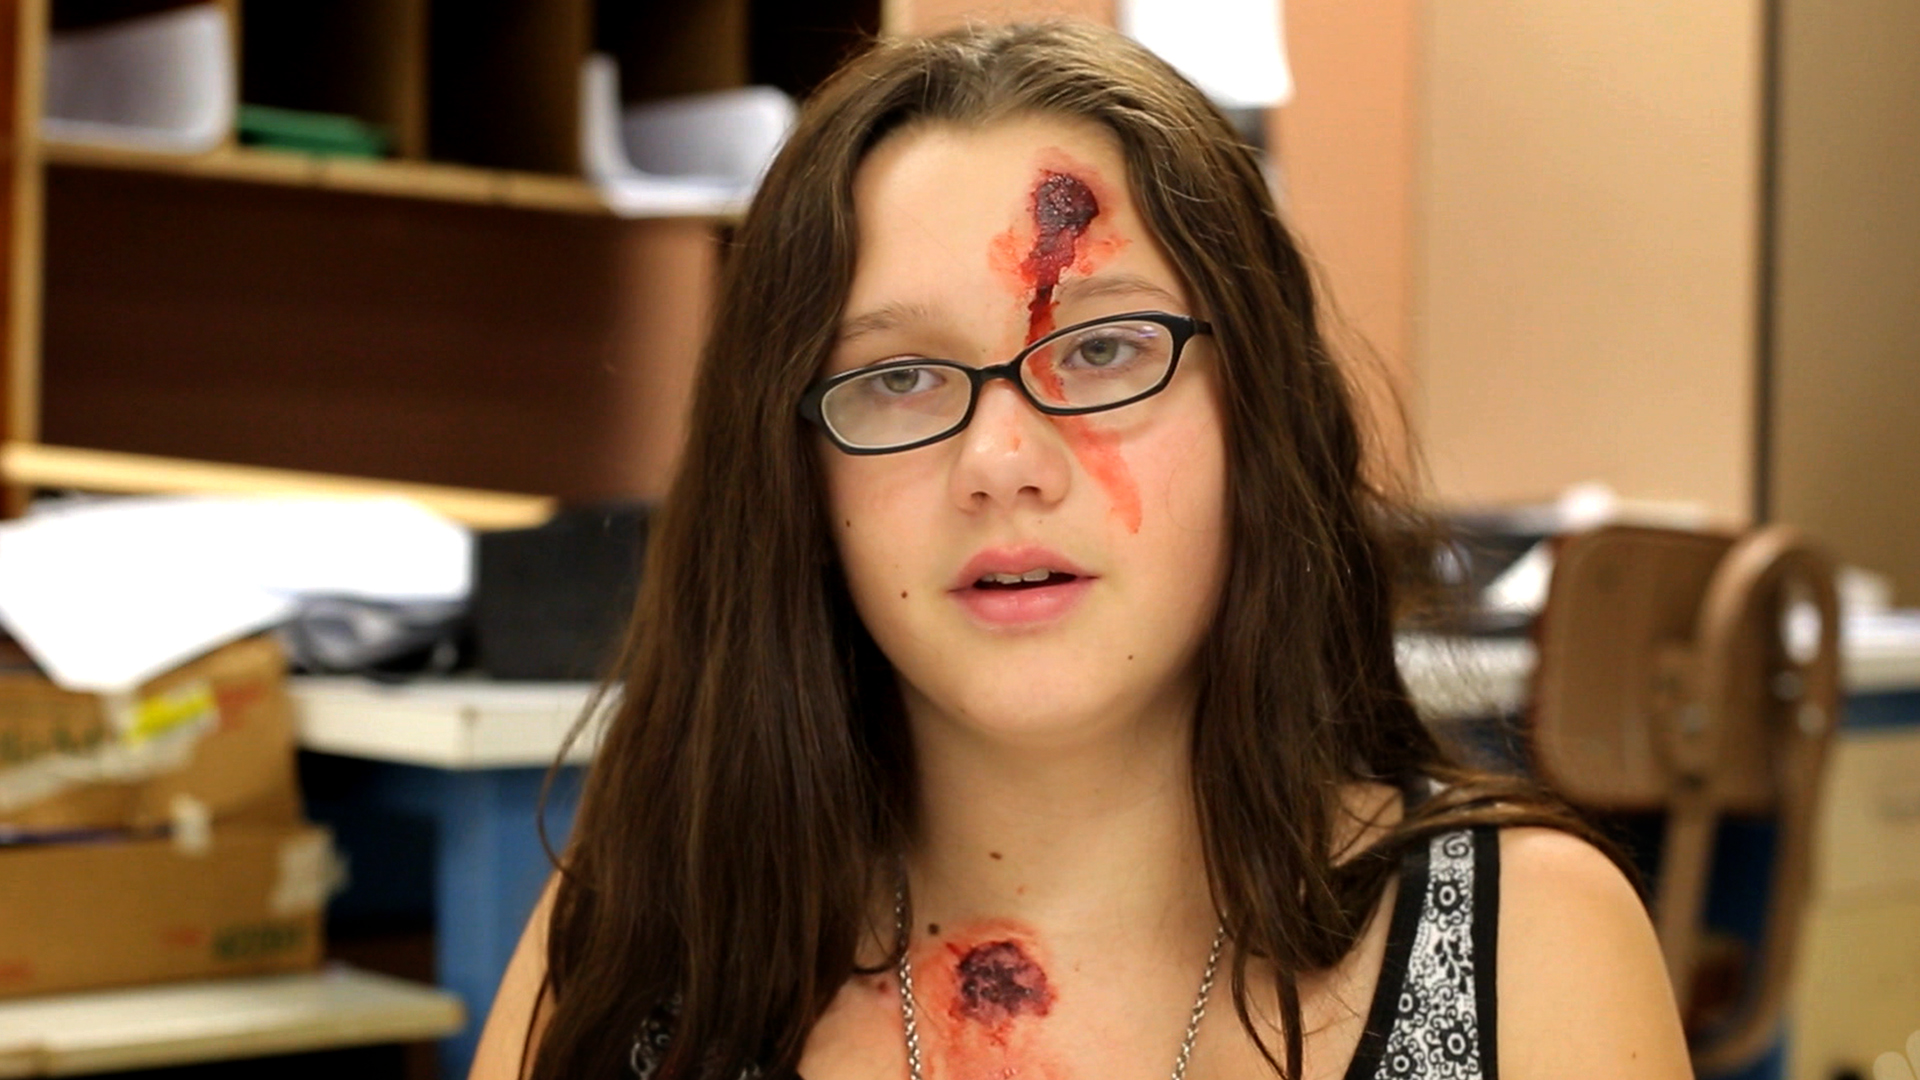 Fake Blood and Blanks: Schools Stage Active Shooter Drills